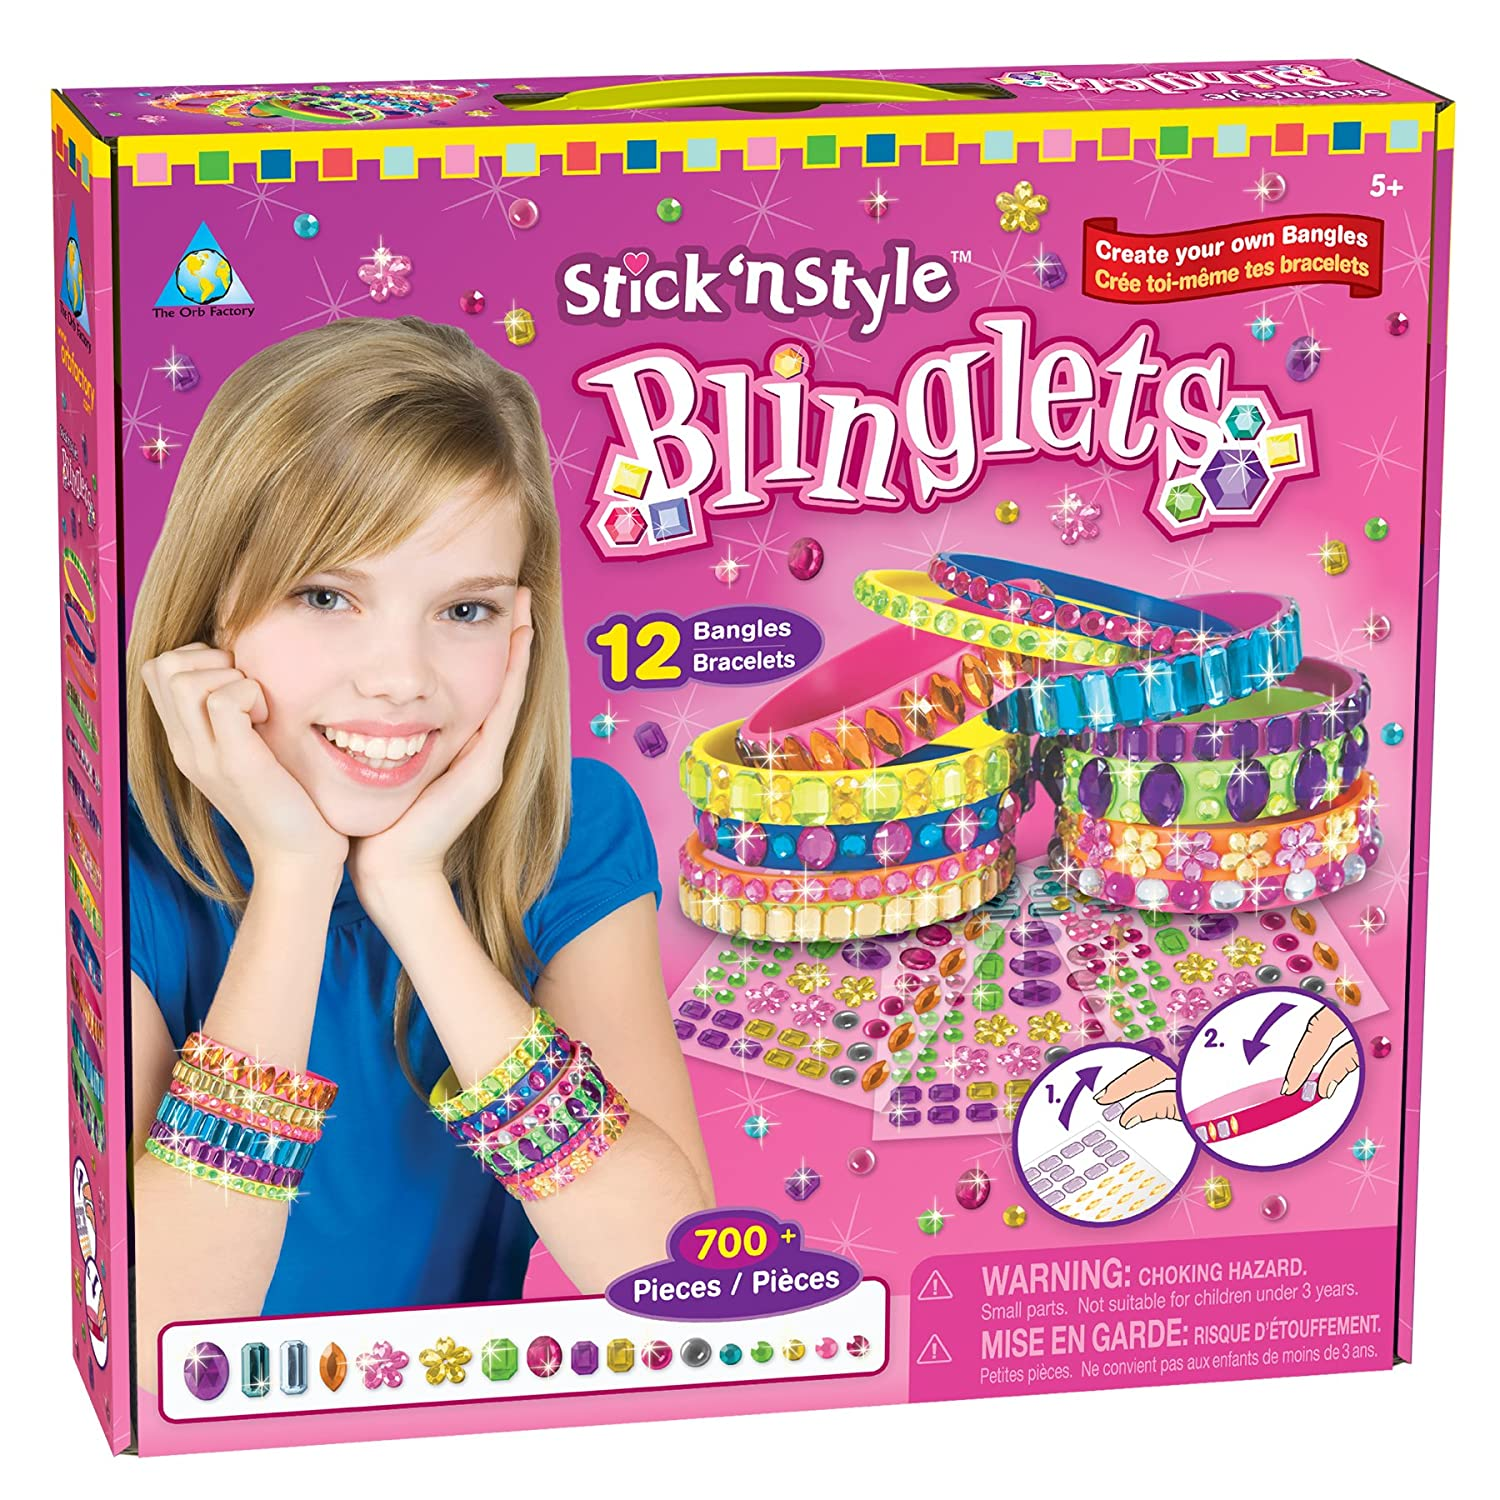 Bracelet making kit for 5 year old Just another WordPress site